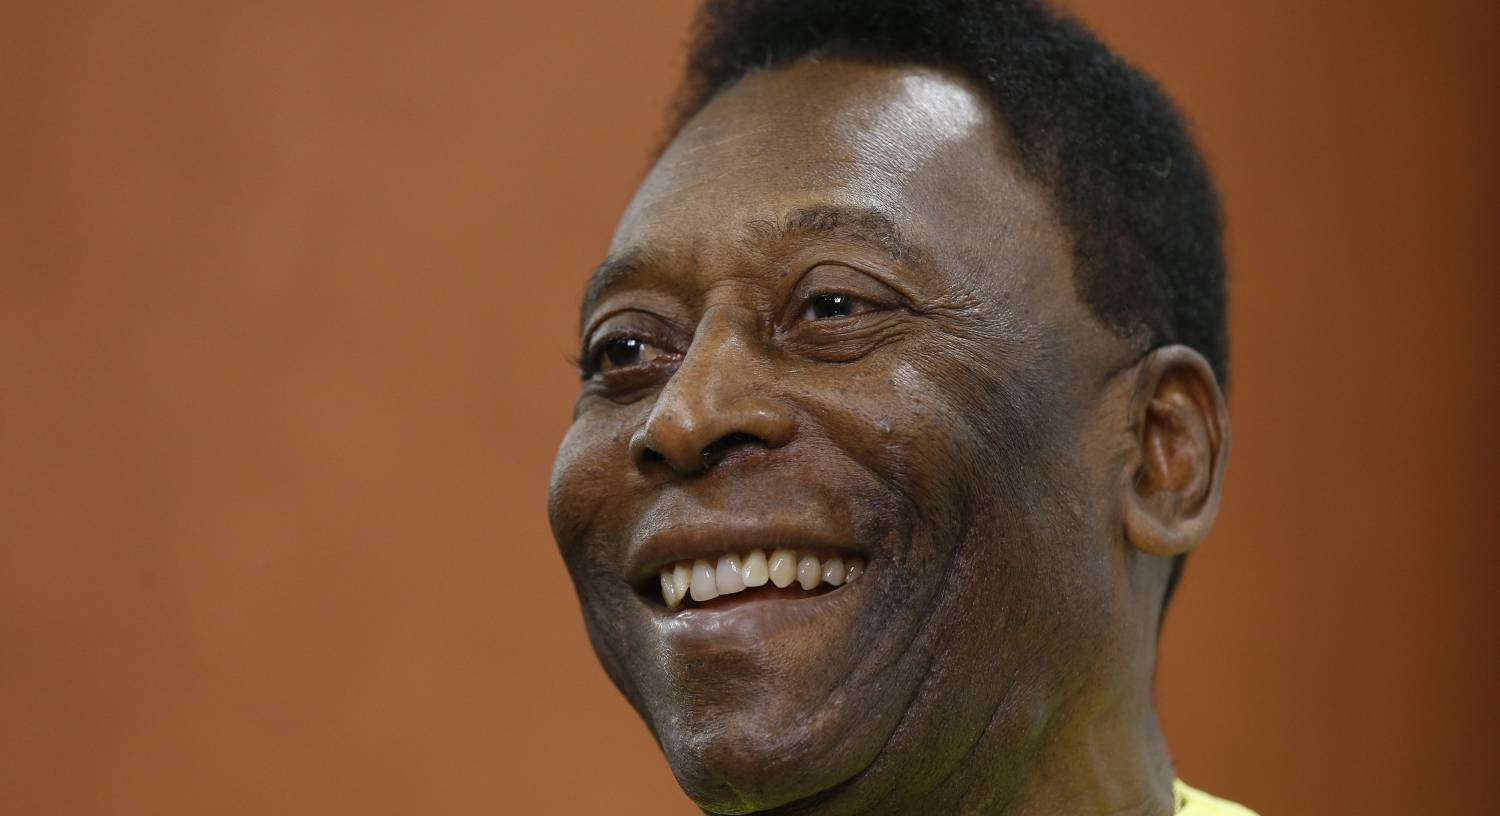 Liam Mackey: There will never be another Pele, said Pele